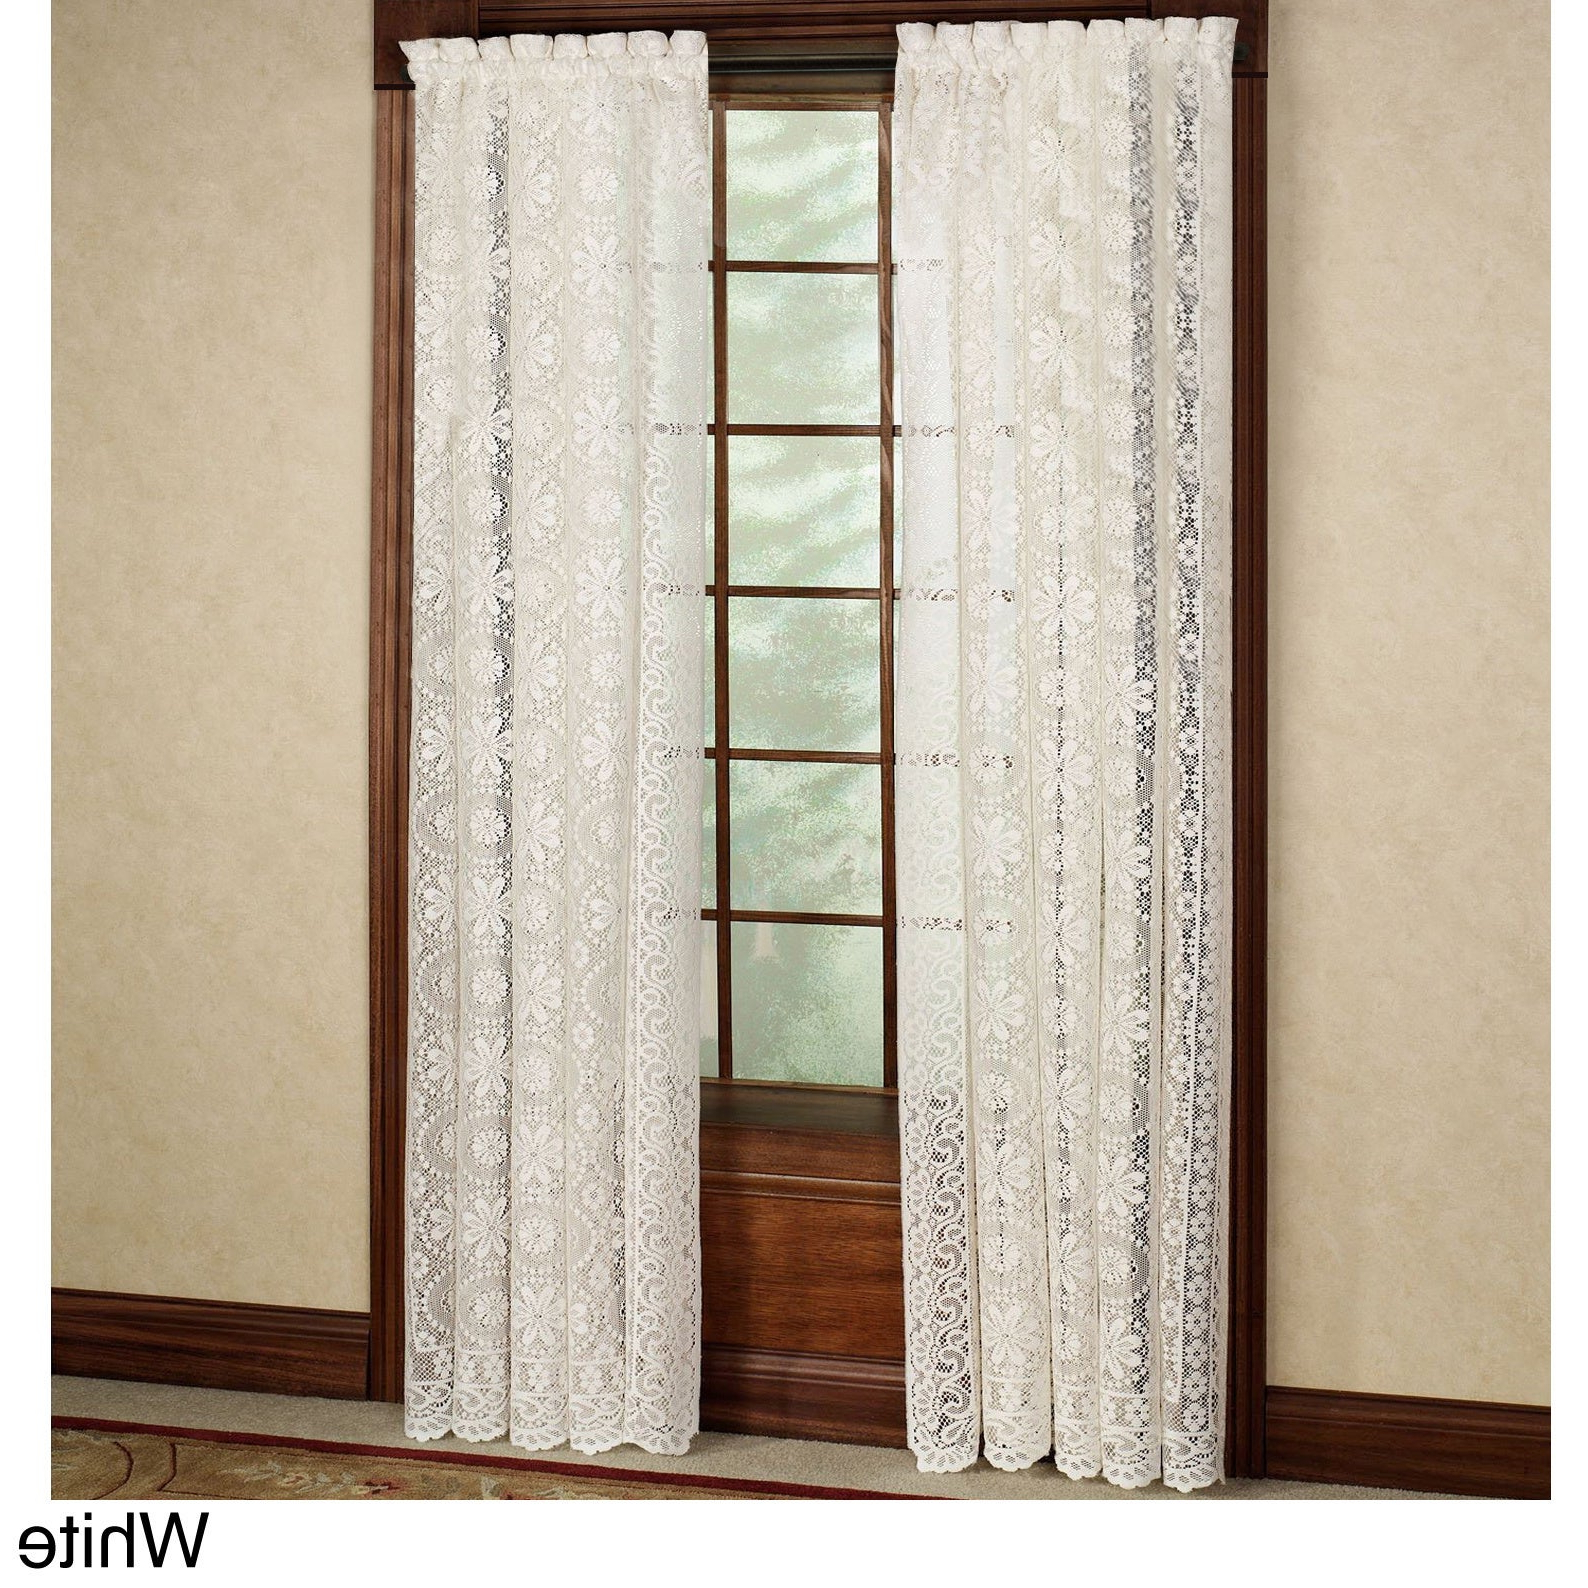 Featured Photo of Luxurious Old World Style Lace Window Curtain Panels